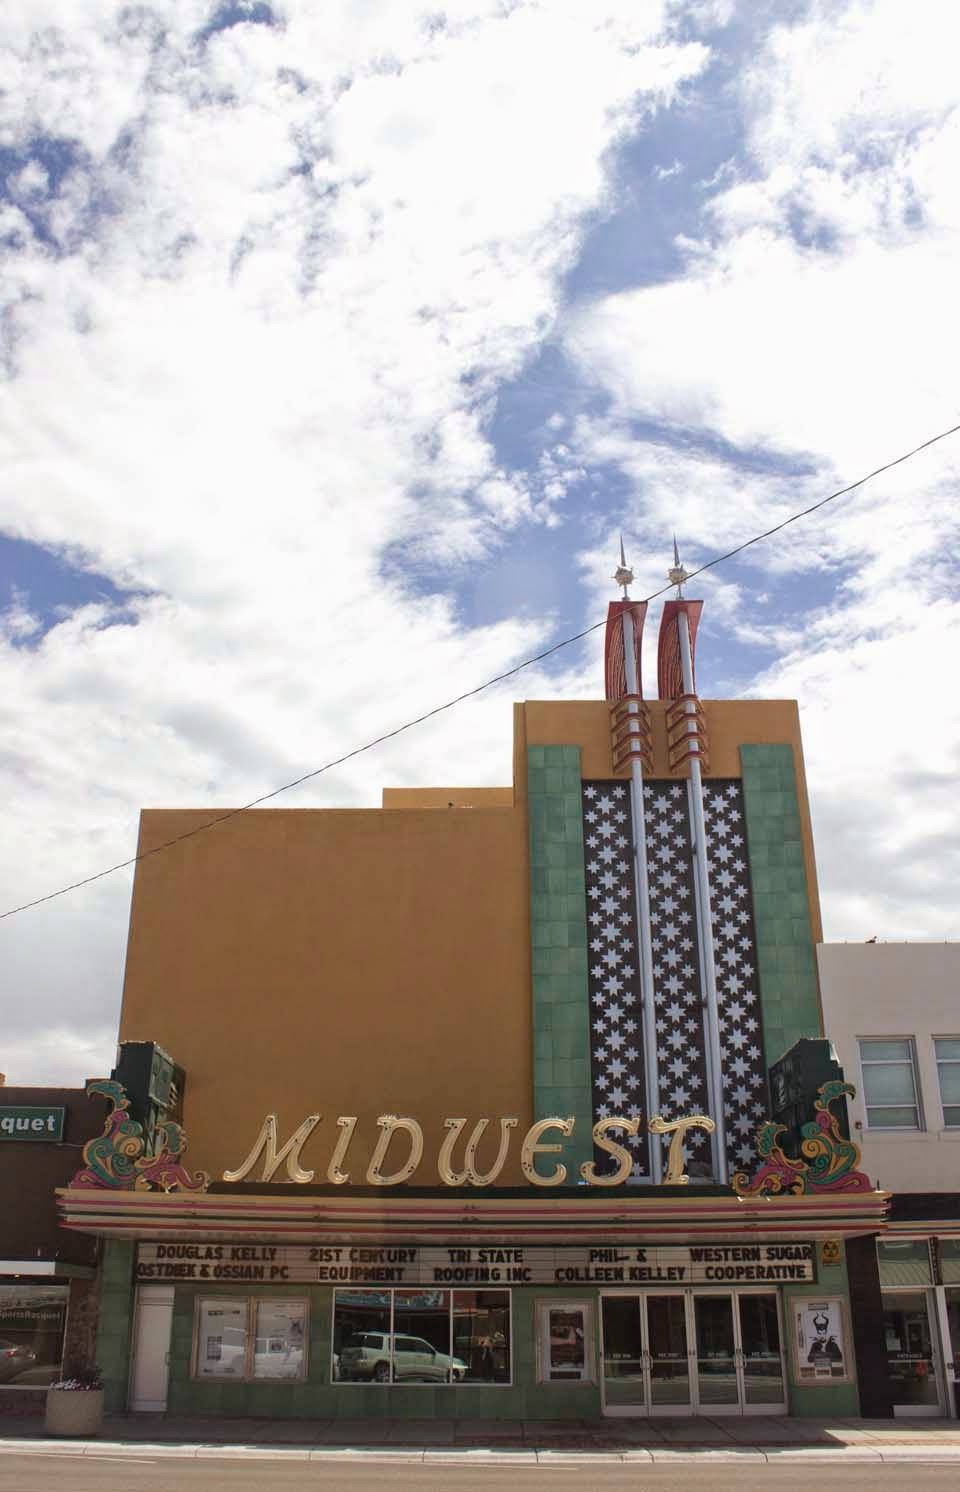 Midwest theater in Scottsbluff, Nebraska